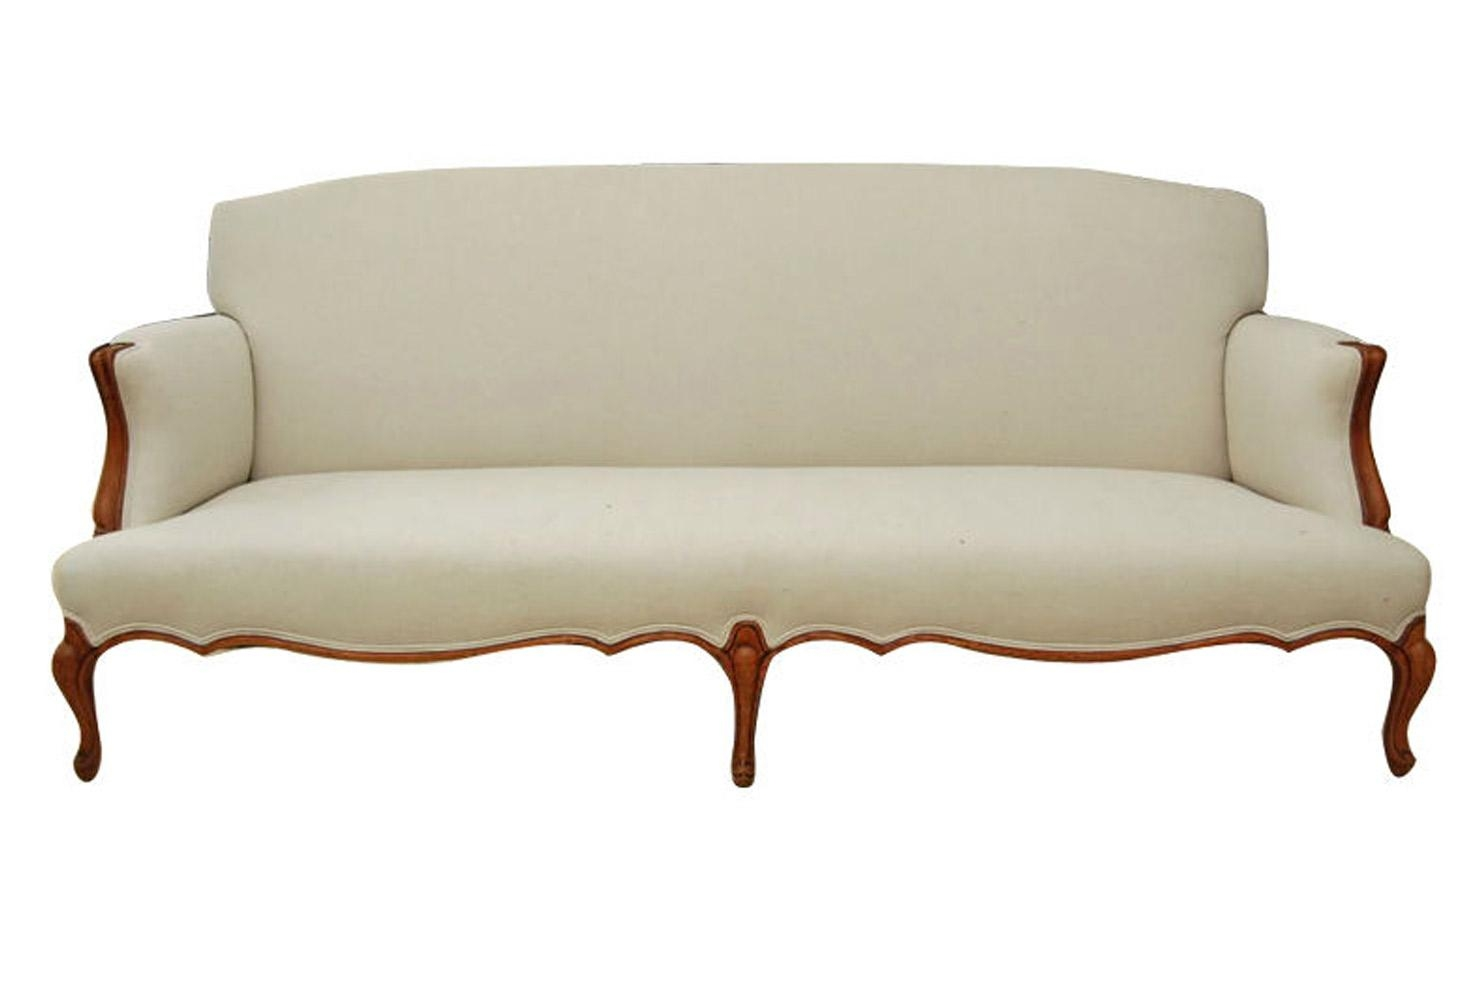 Couch Vintage Look : 20 collection of vintage sofa styles sofa ideas ~ Sanjose-hotels-ca.com Haus und Dekorationen